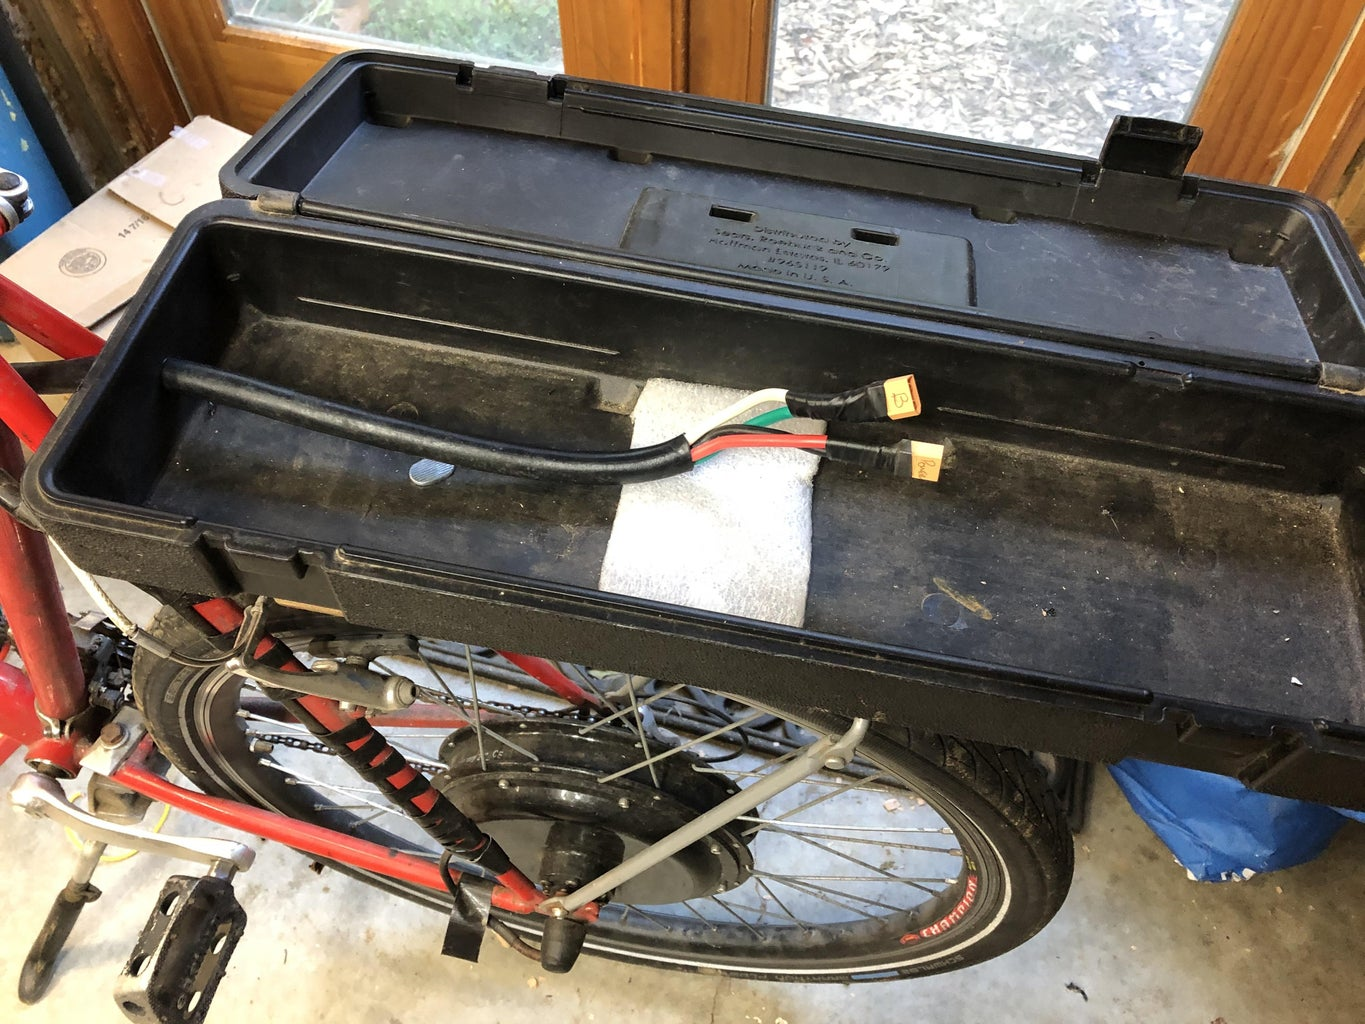 Attaching the Toolbox / Battery Box to the Bike